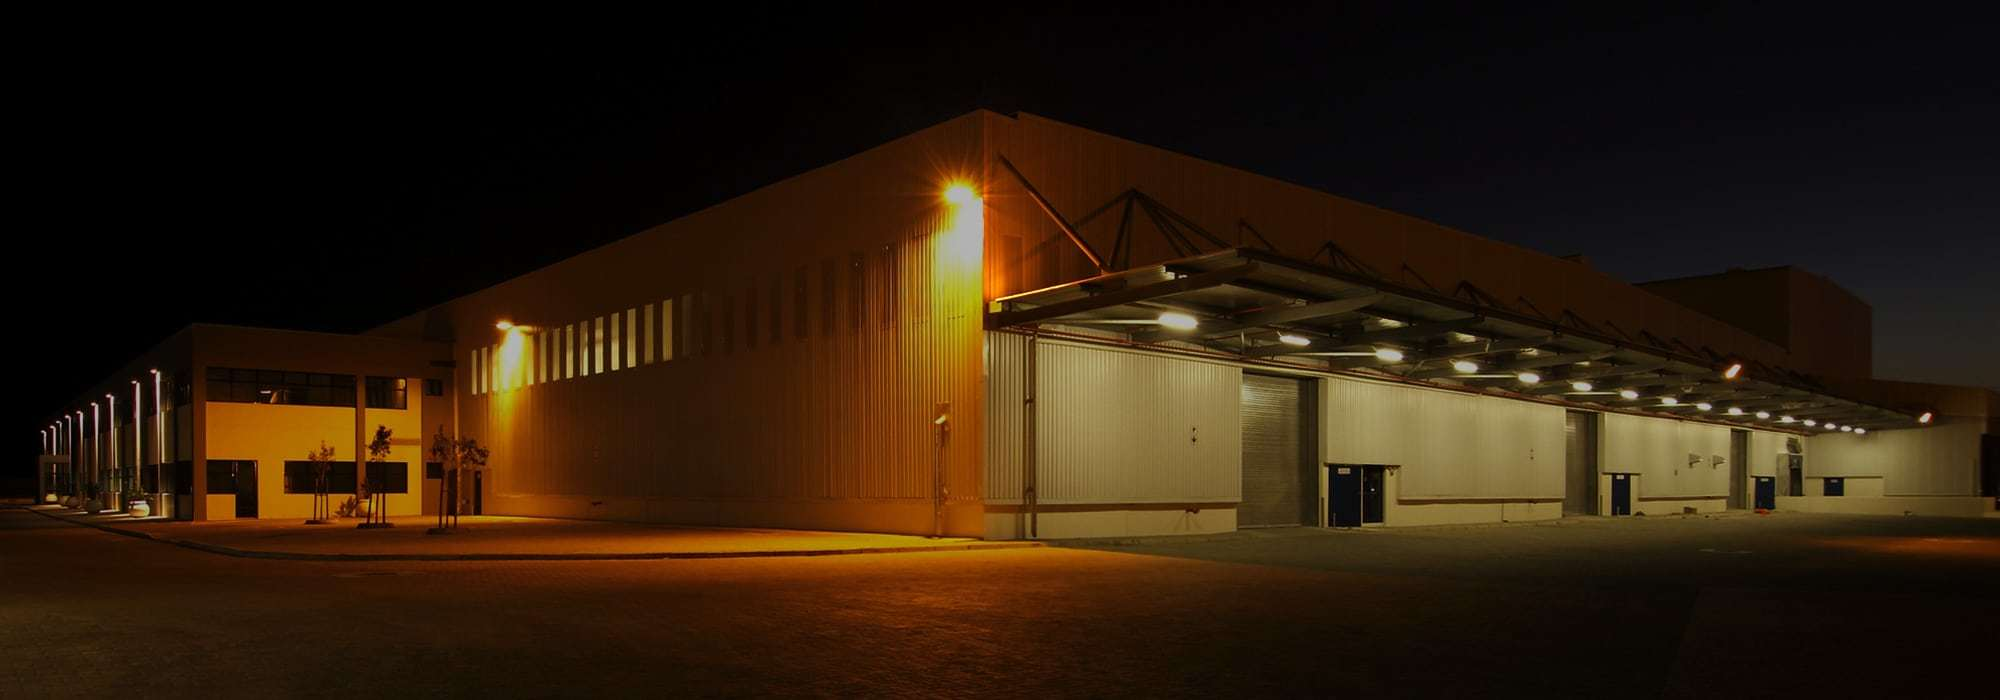 commercial facility lit up at night